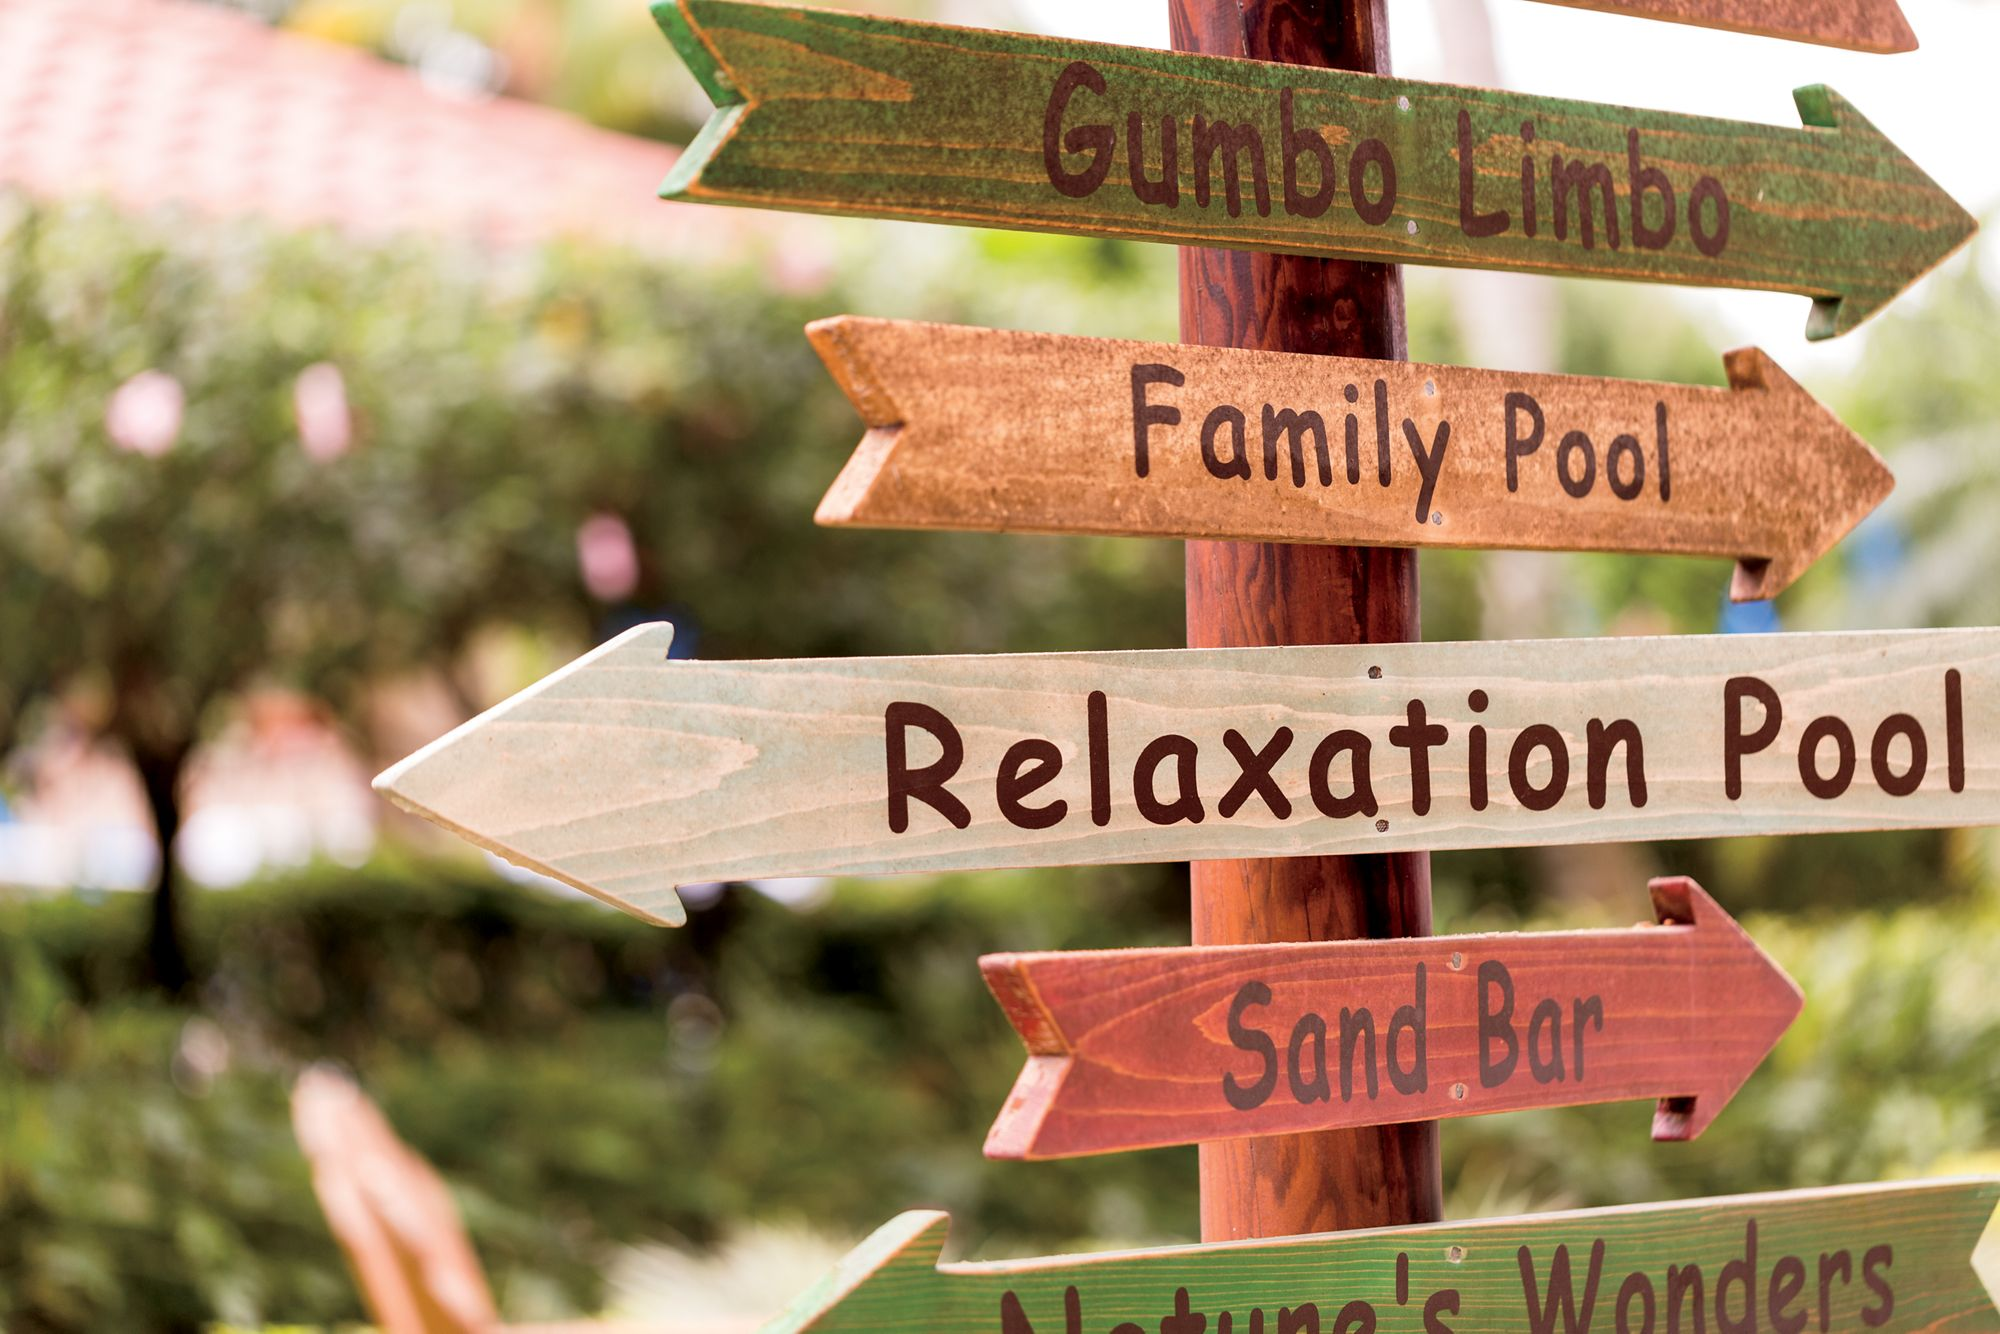 """A wood sign with multiple arrows directing readers to """"Gumbo Limbo,"""" the """"Family Pool,"""" the """"Relaxation Pool"""" and """"Sand Bar"""""""